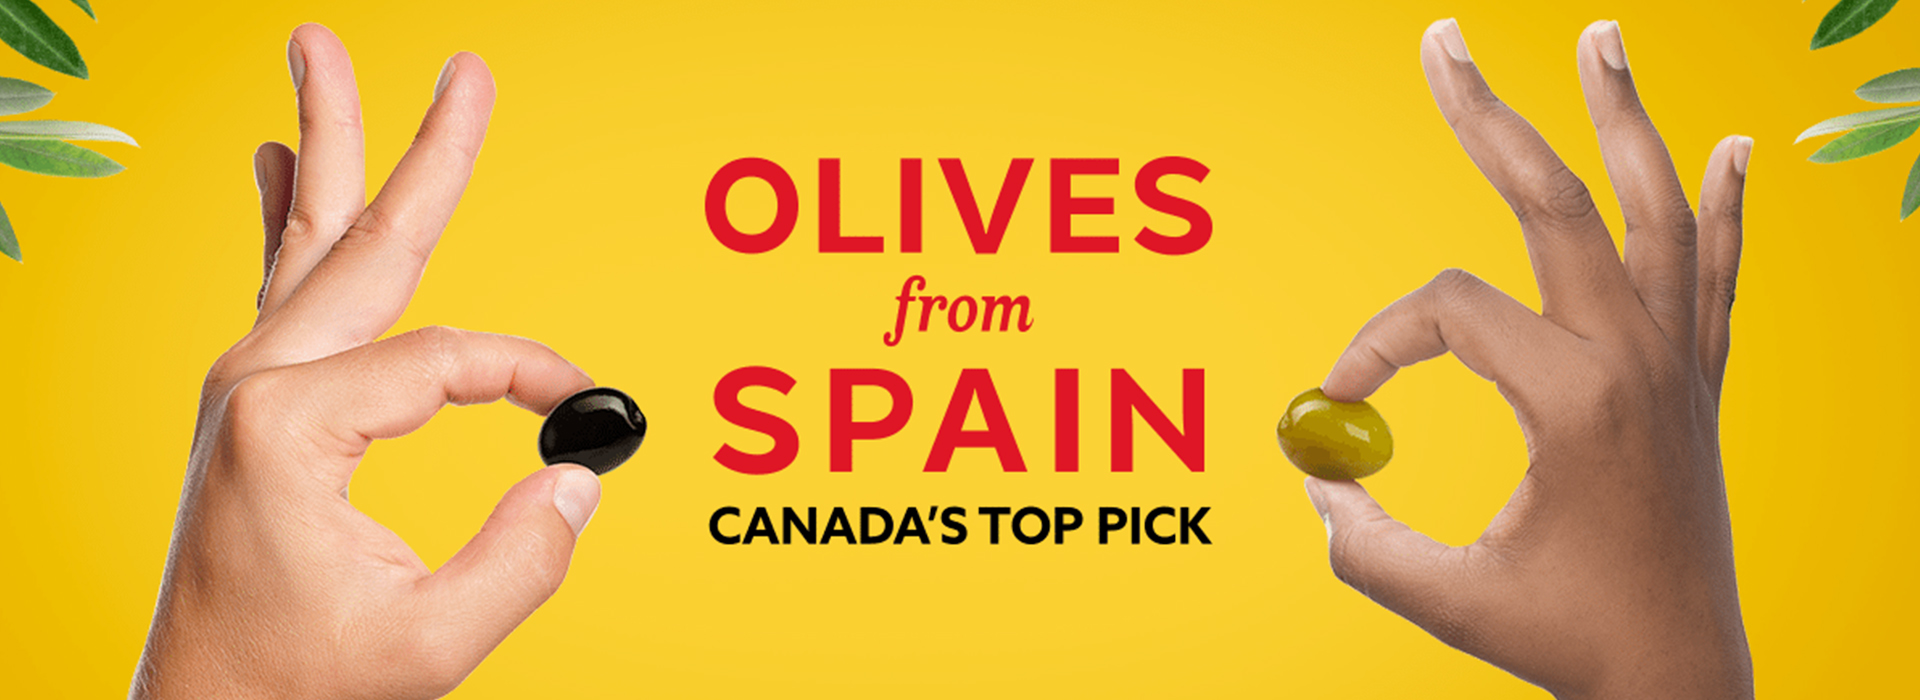 Key visual : Olives from Spain